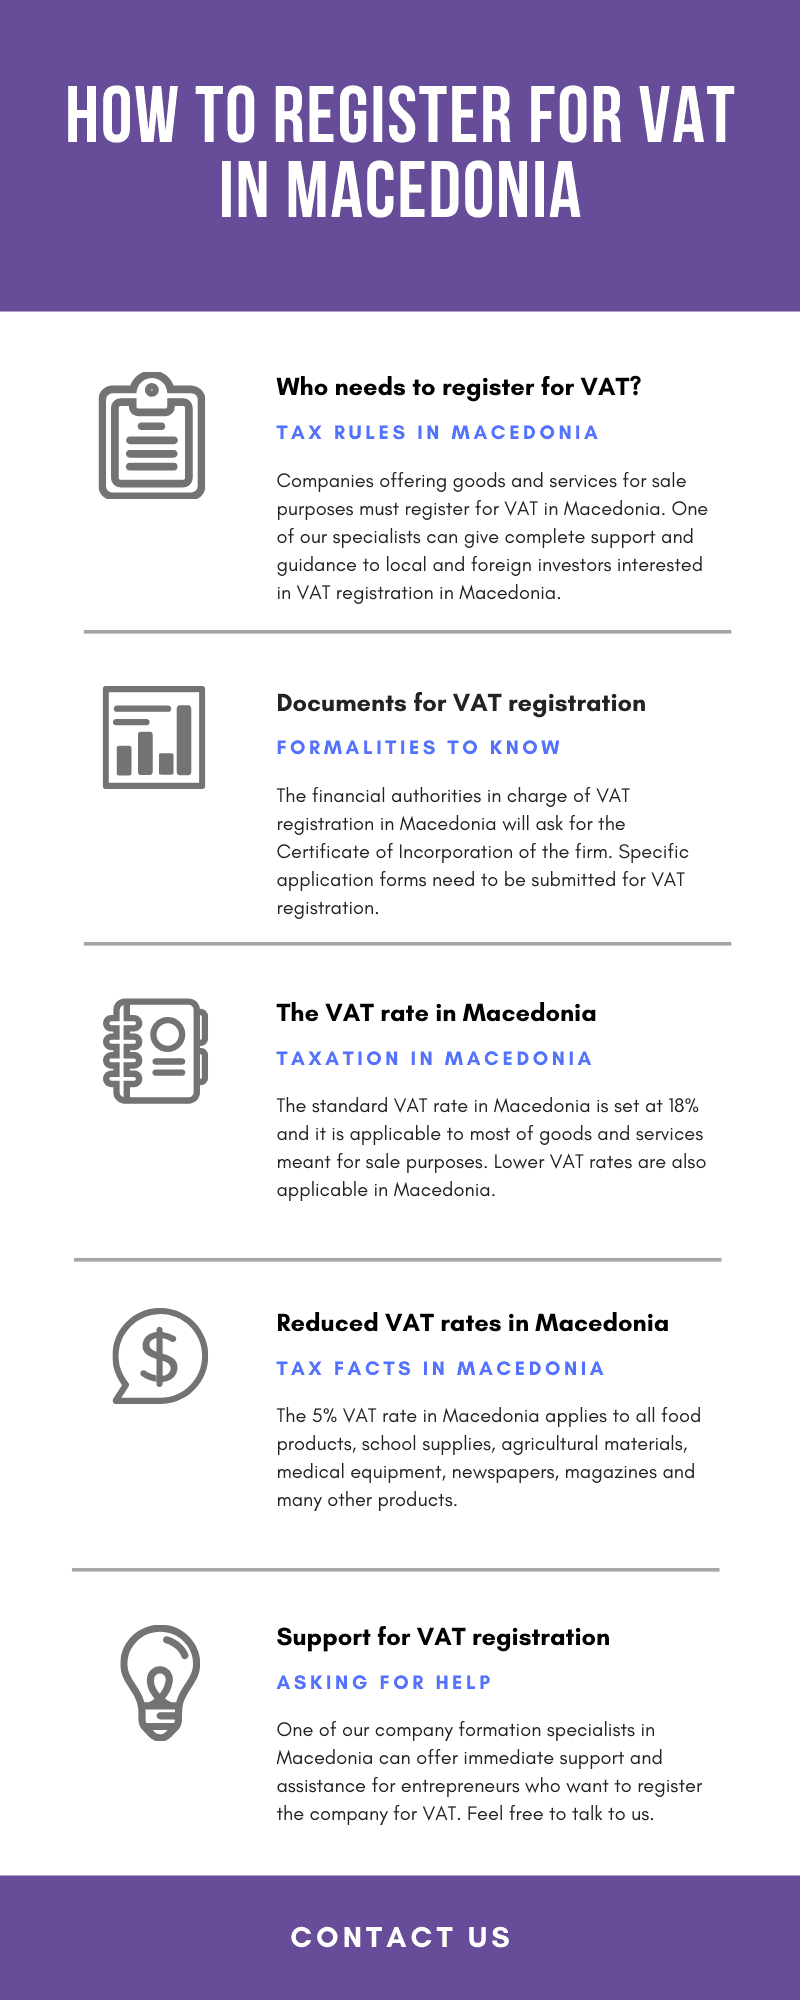 How to register for VAT in Macedonia1.png